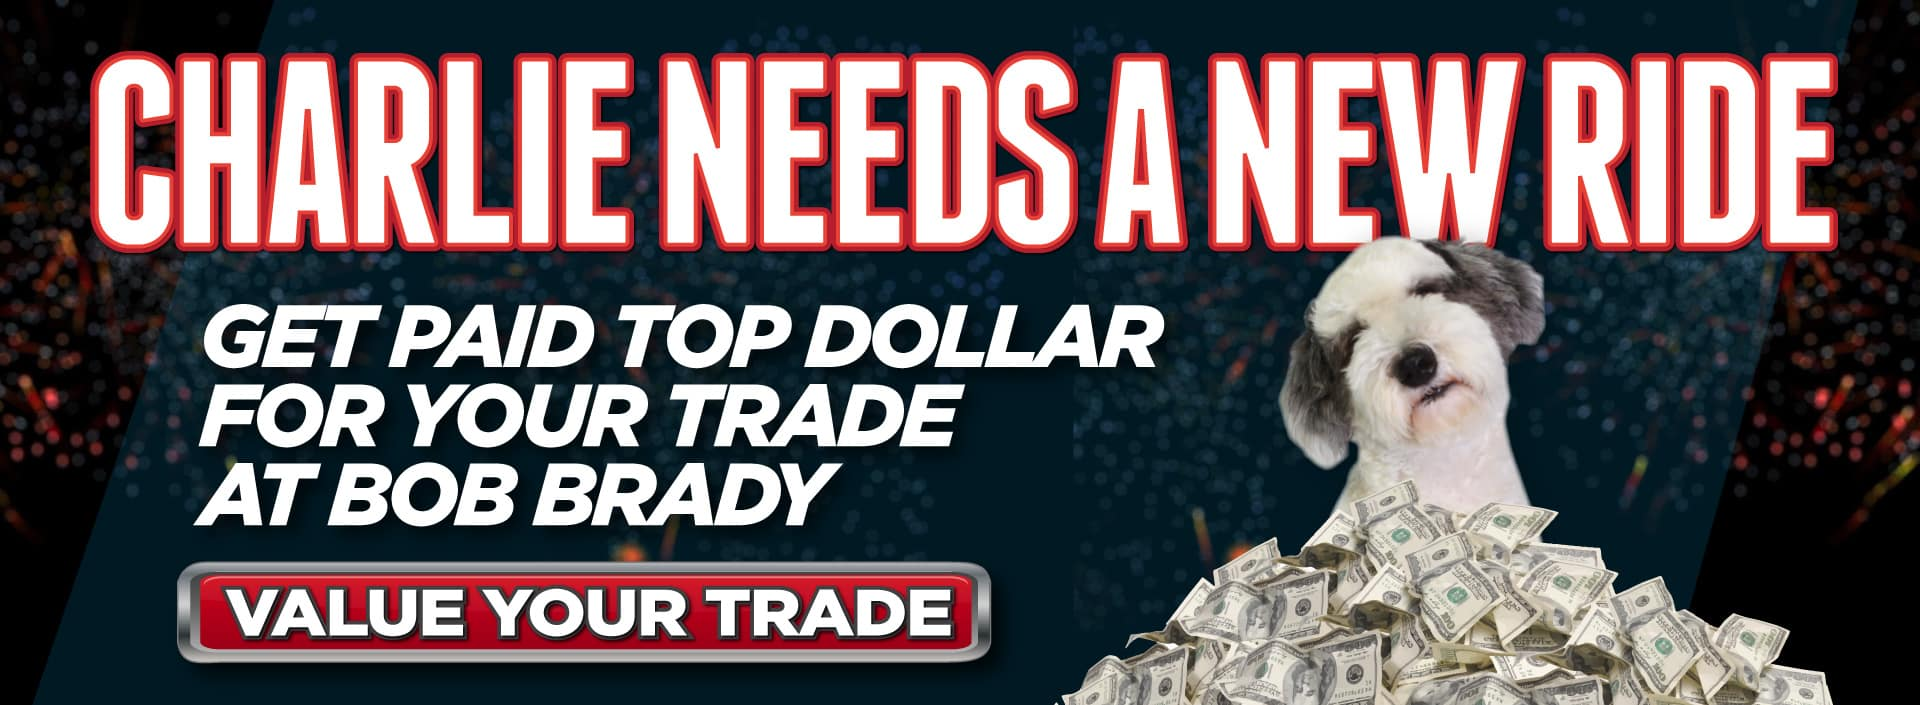 Get paid top dolar for your trade at Bob Brady! Value your trade now